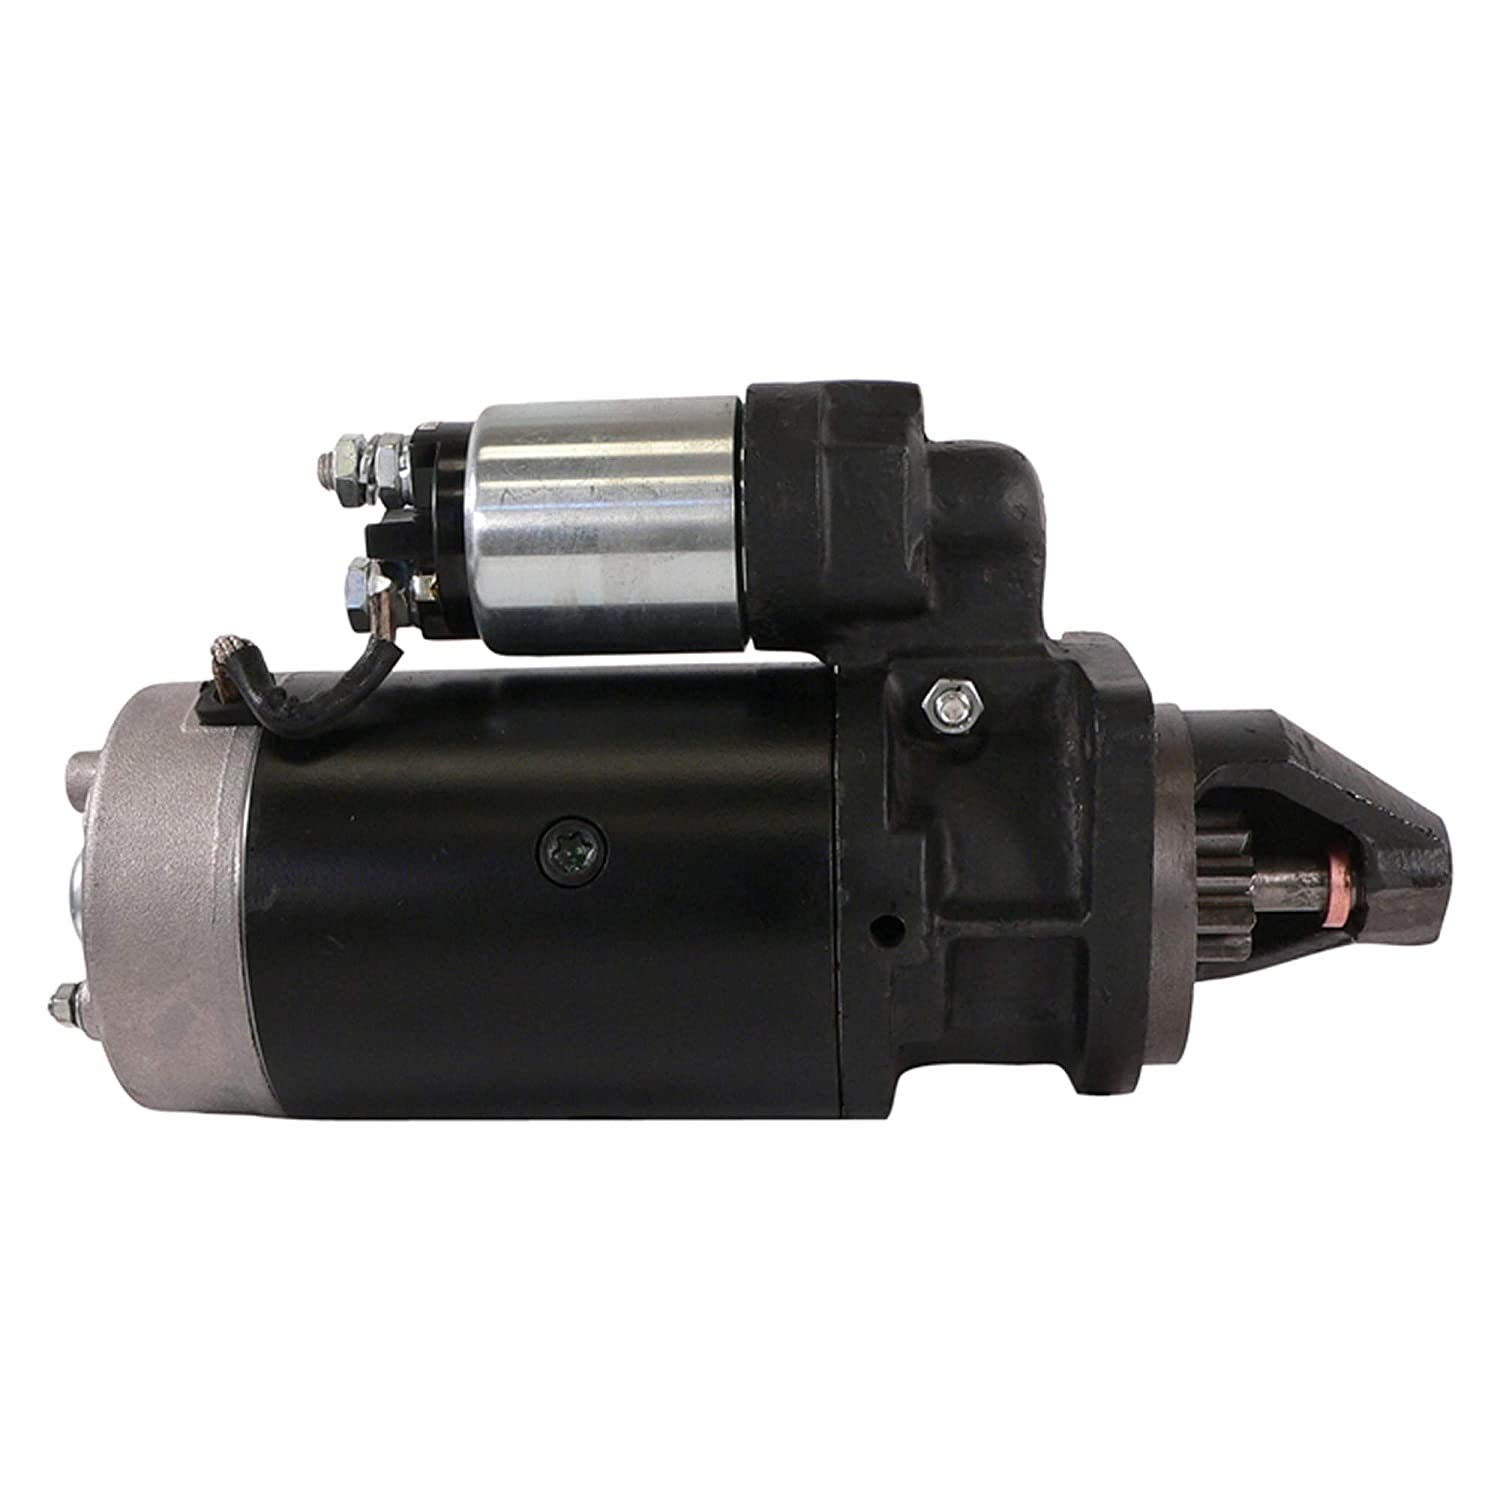 DB Electrical SBO0077 New Starter For Timberjack Caterpillar Massey With Perkins Eng 0-001-368-040 0-001-368-051 IMI45002-005 IS0993 MS369 112670 OR1903 410-24189 18254 IS0993 3091293-M92 2-2299-BO